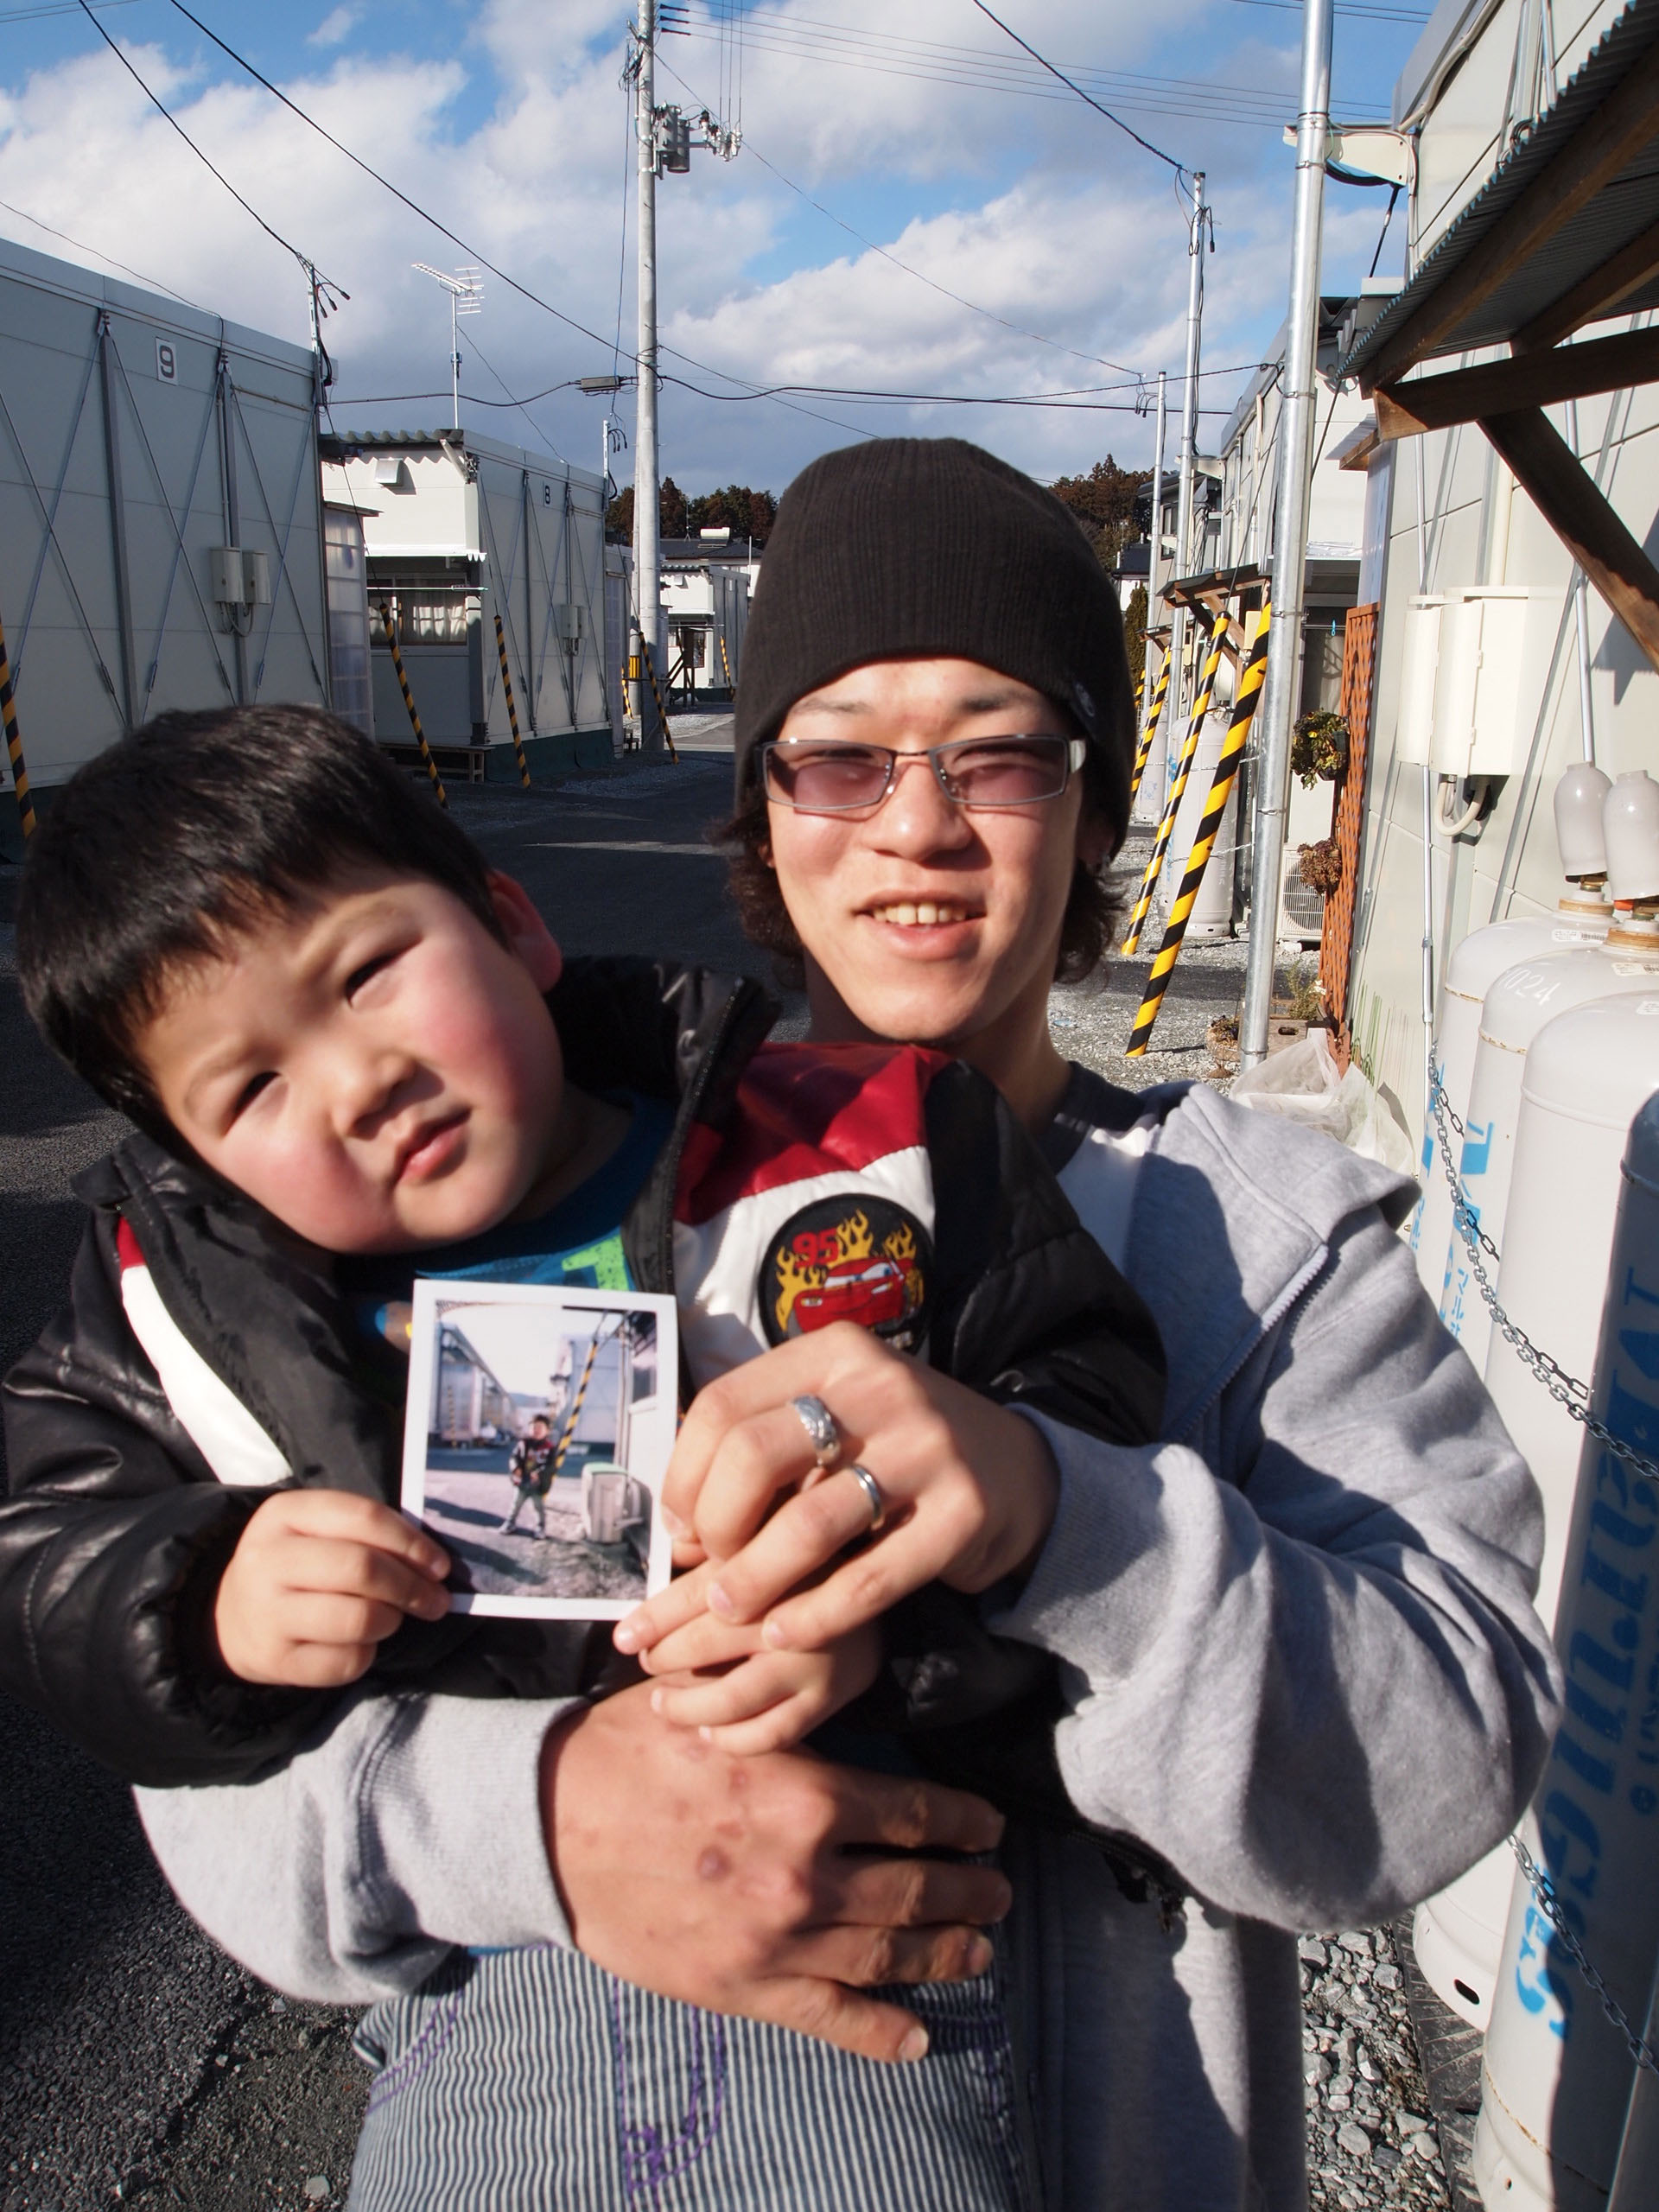 Memory bank: Proud father Tomohiro Nagakura shows off his son, Yushin, and a photo given to him by Photohoku at the Hirobata Temporary Housing Complex in Shinchi, Fukushima Prefecture. | JON MITCHELL PHOTOS